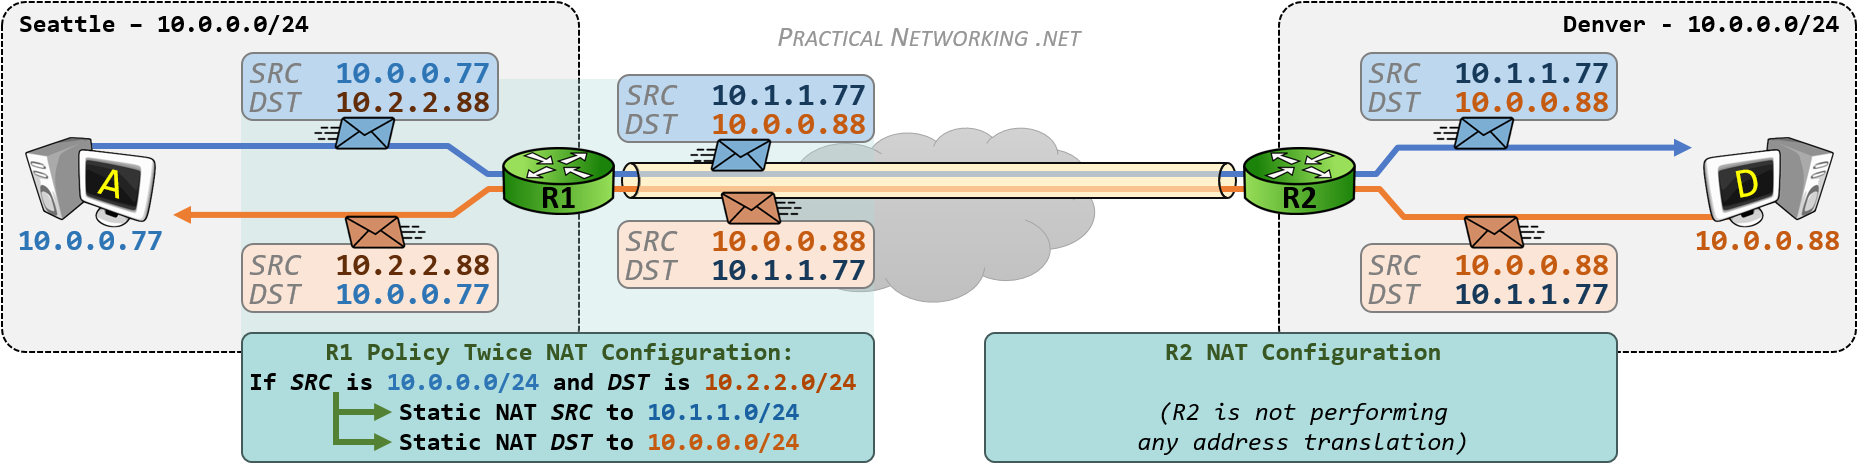 VPN Overlapping Networks - Policy Twice NAT